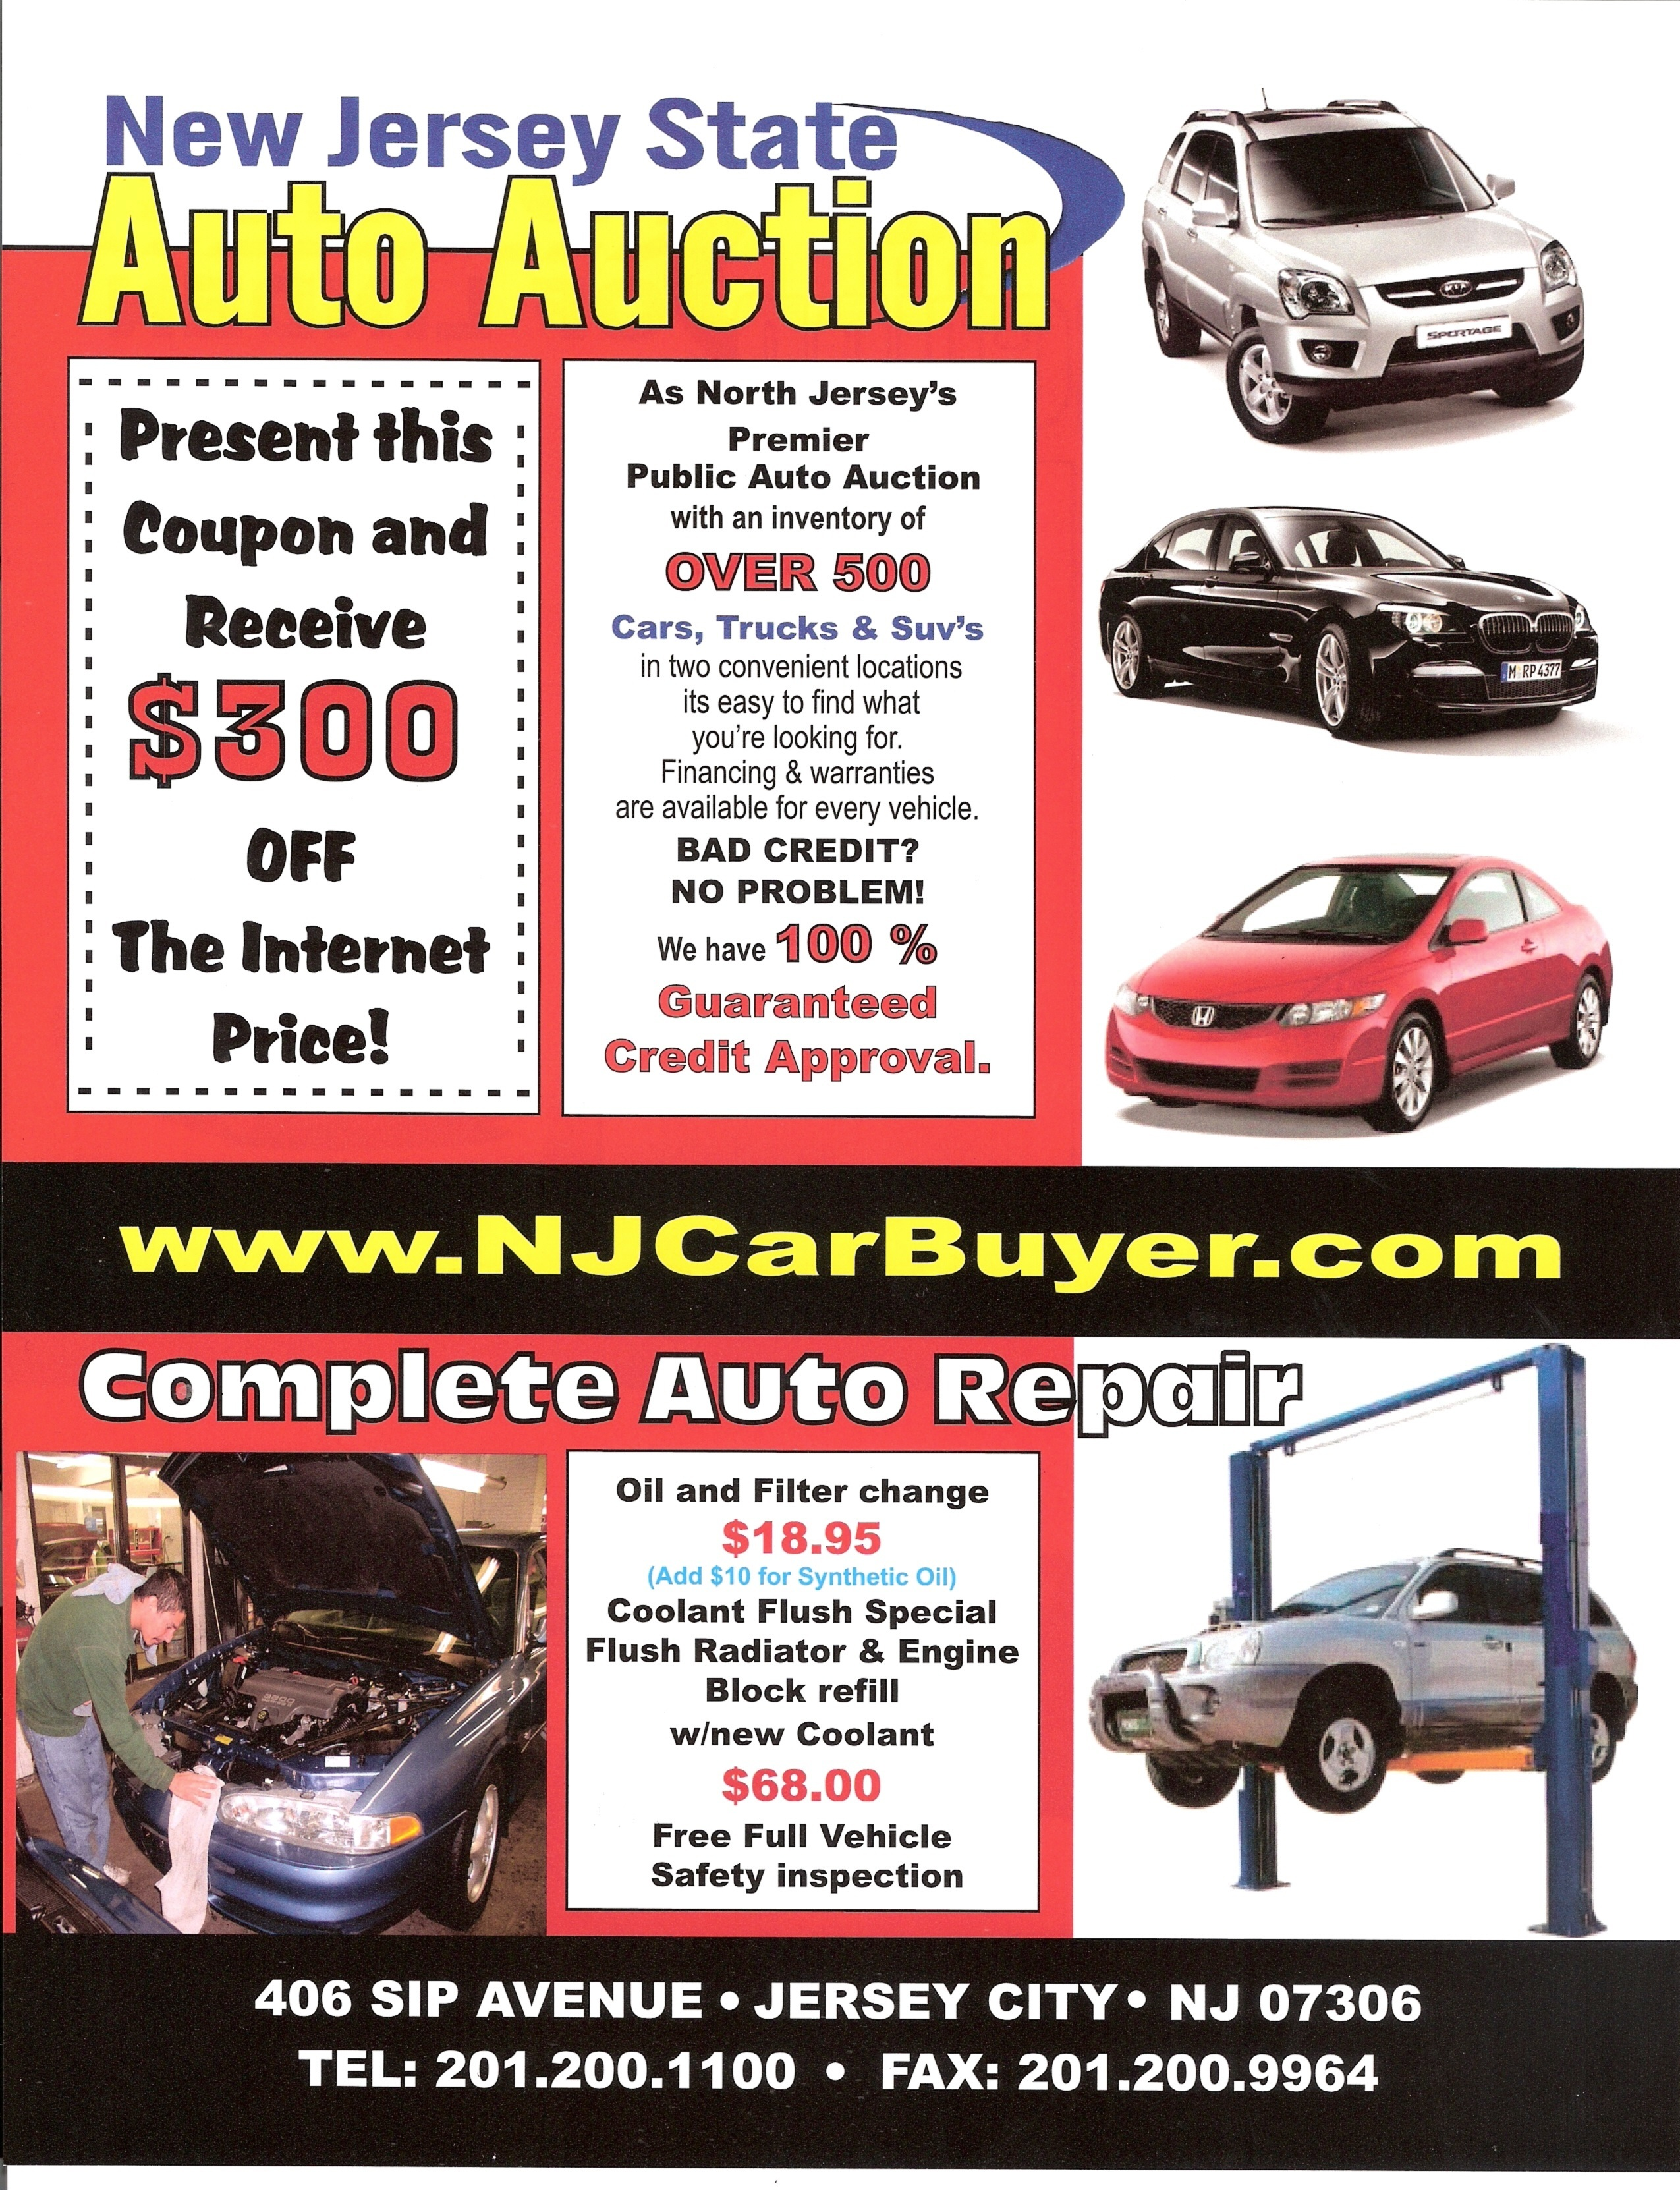 Certified Auto Sales >> New Jersey State Auto Auction Becomes an AskPatty.com Certified Female Friendly Dealer in Jersey ...